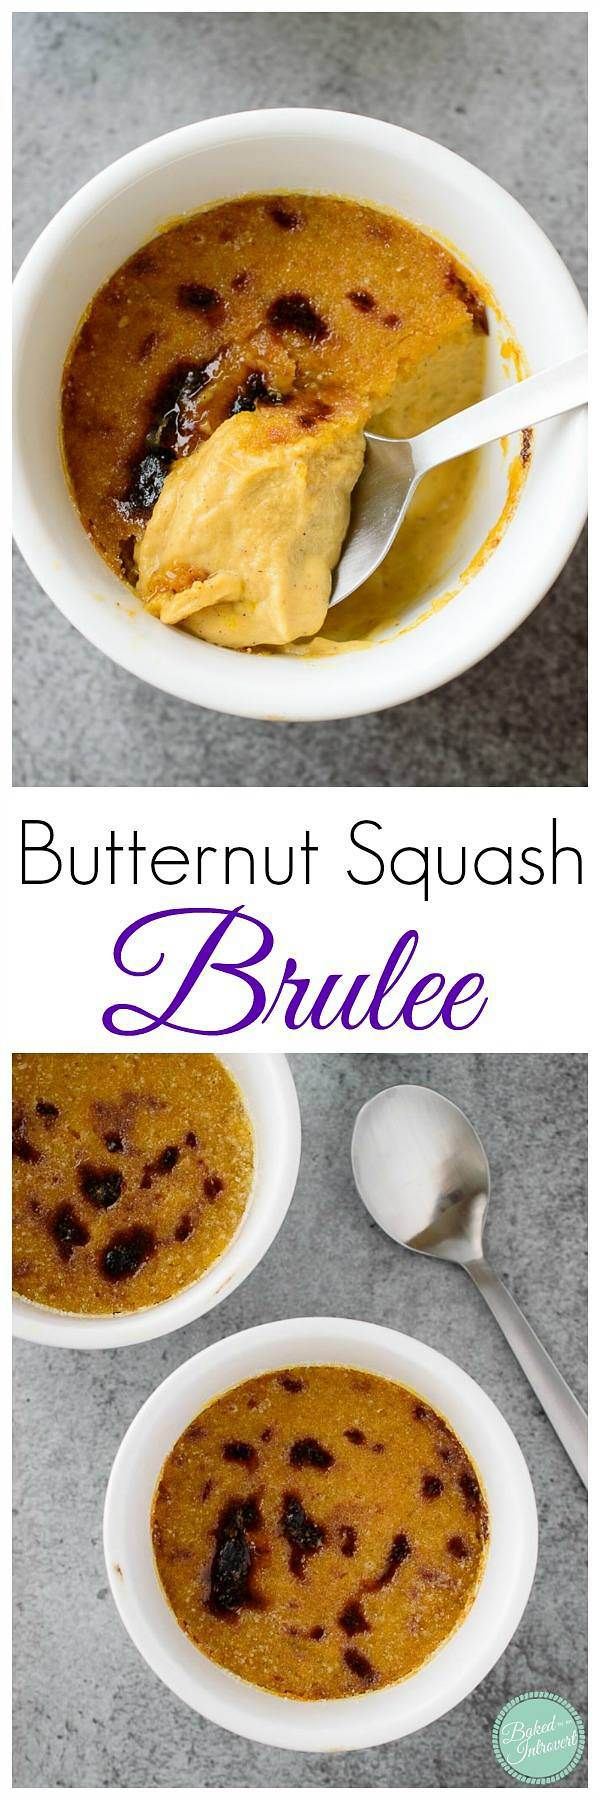 Butternut Squash Brulee - Sweet, creamy butternut squash custard topped with crunchy caramelized sugar. This is a brulee you will want to make over and over again.